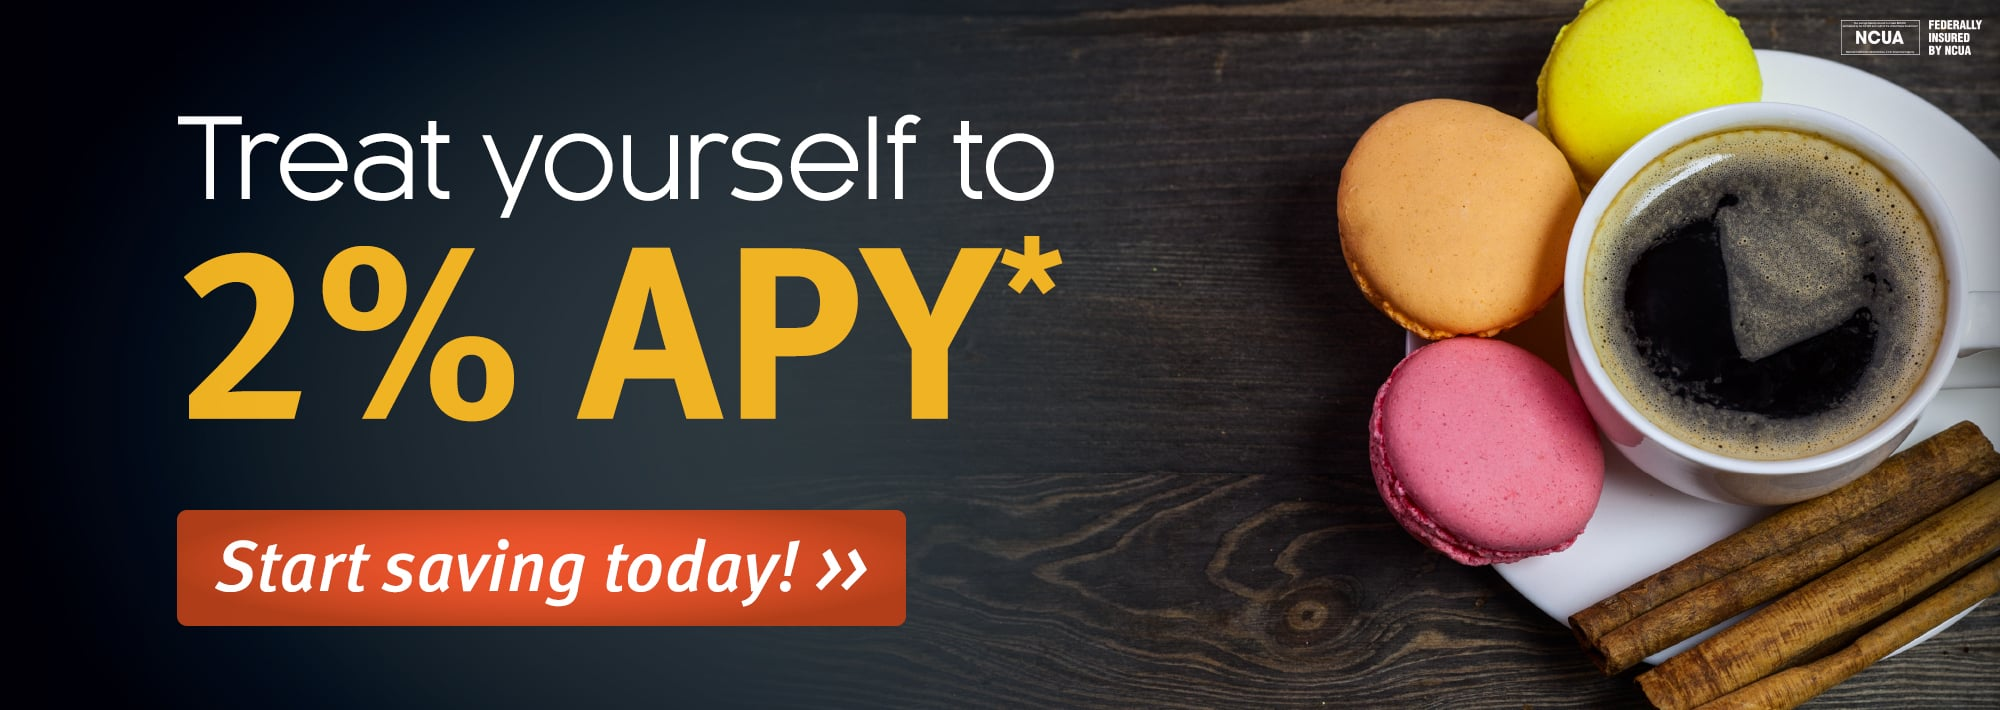 Treat yourself to 2% APY*! Start saving today! Learn more.